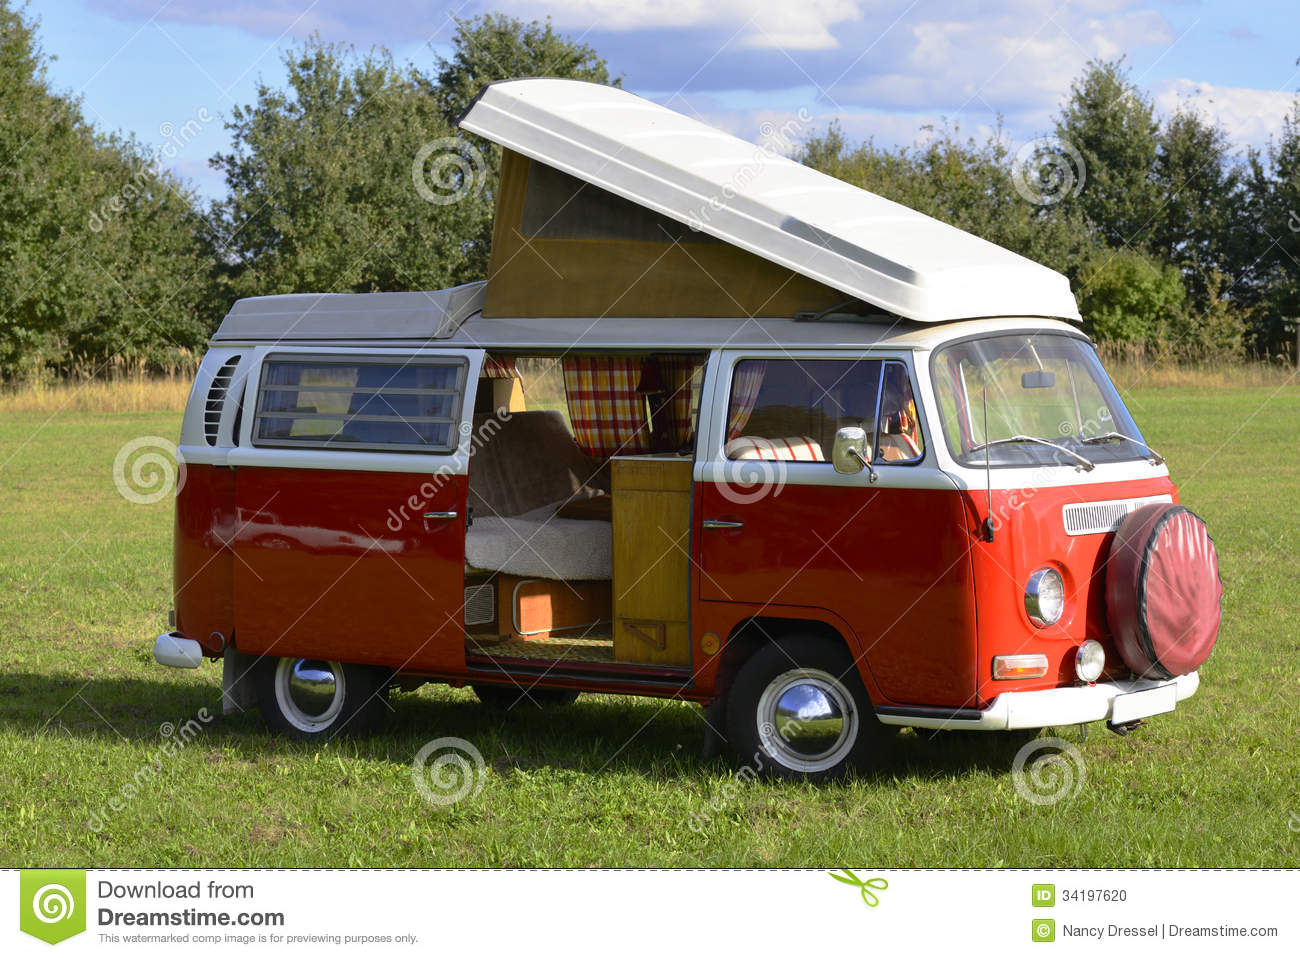 Retro car volkswagen bus 1969 camping model stock photo for Interieur camping car